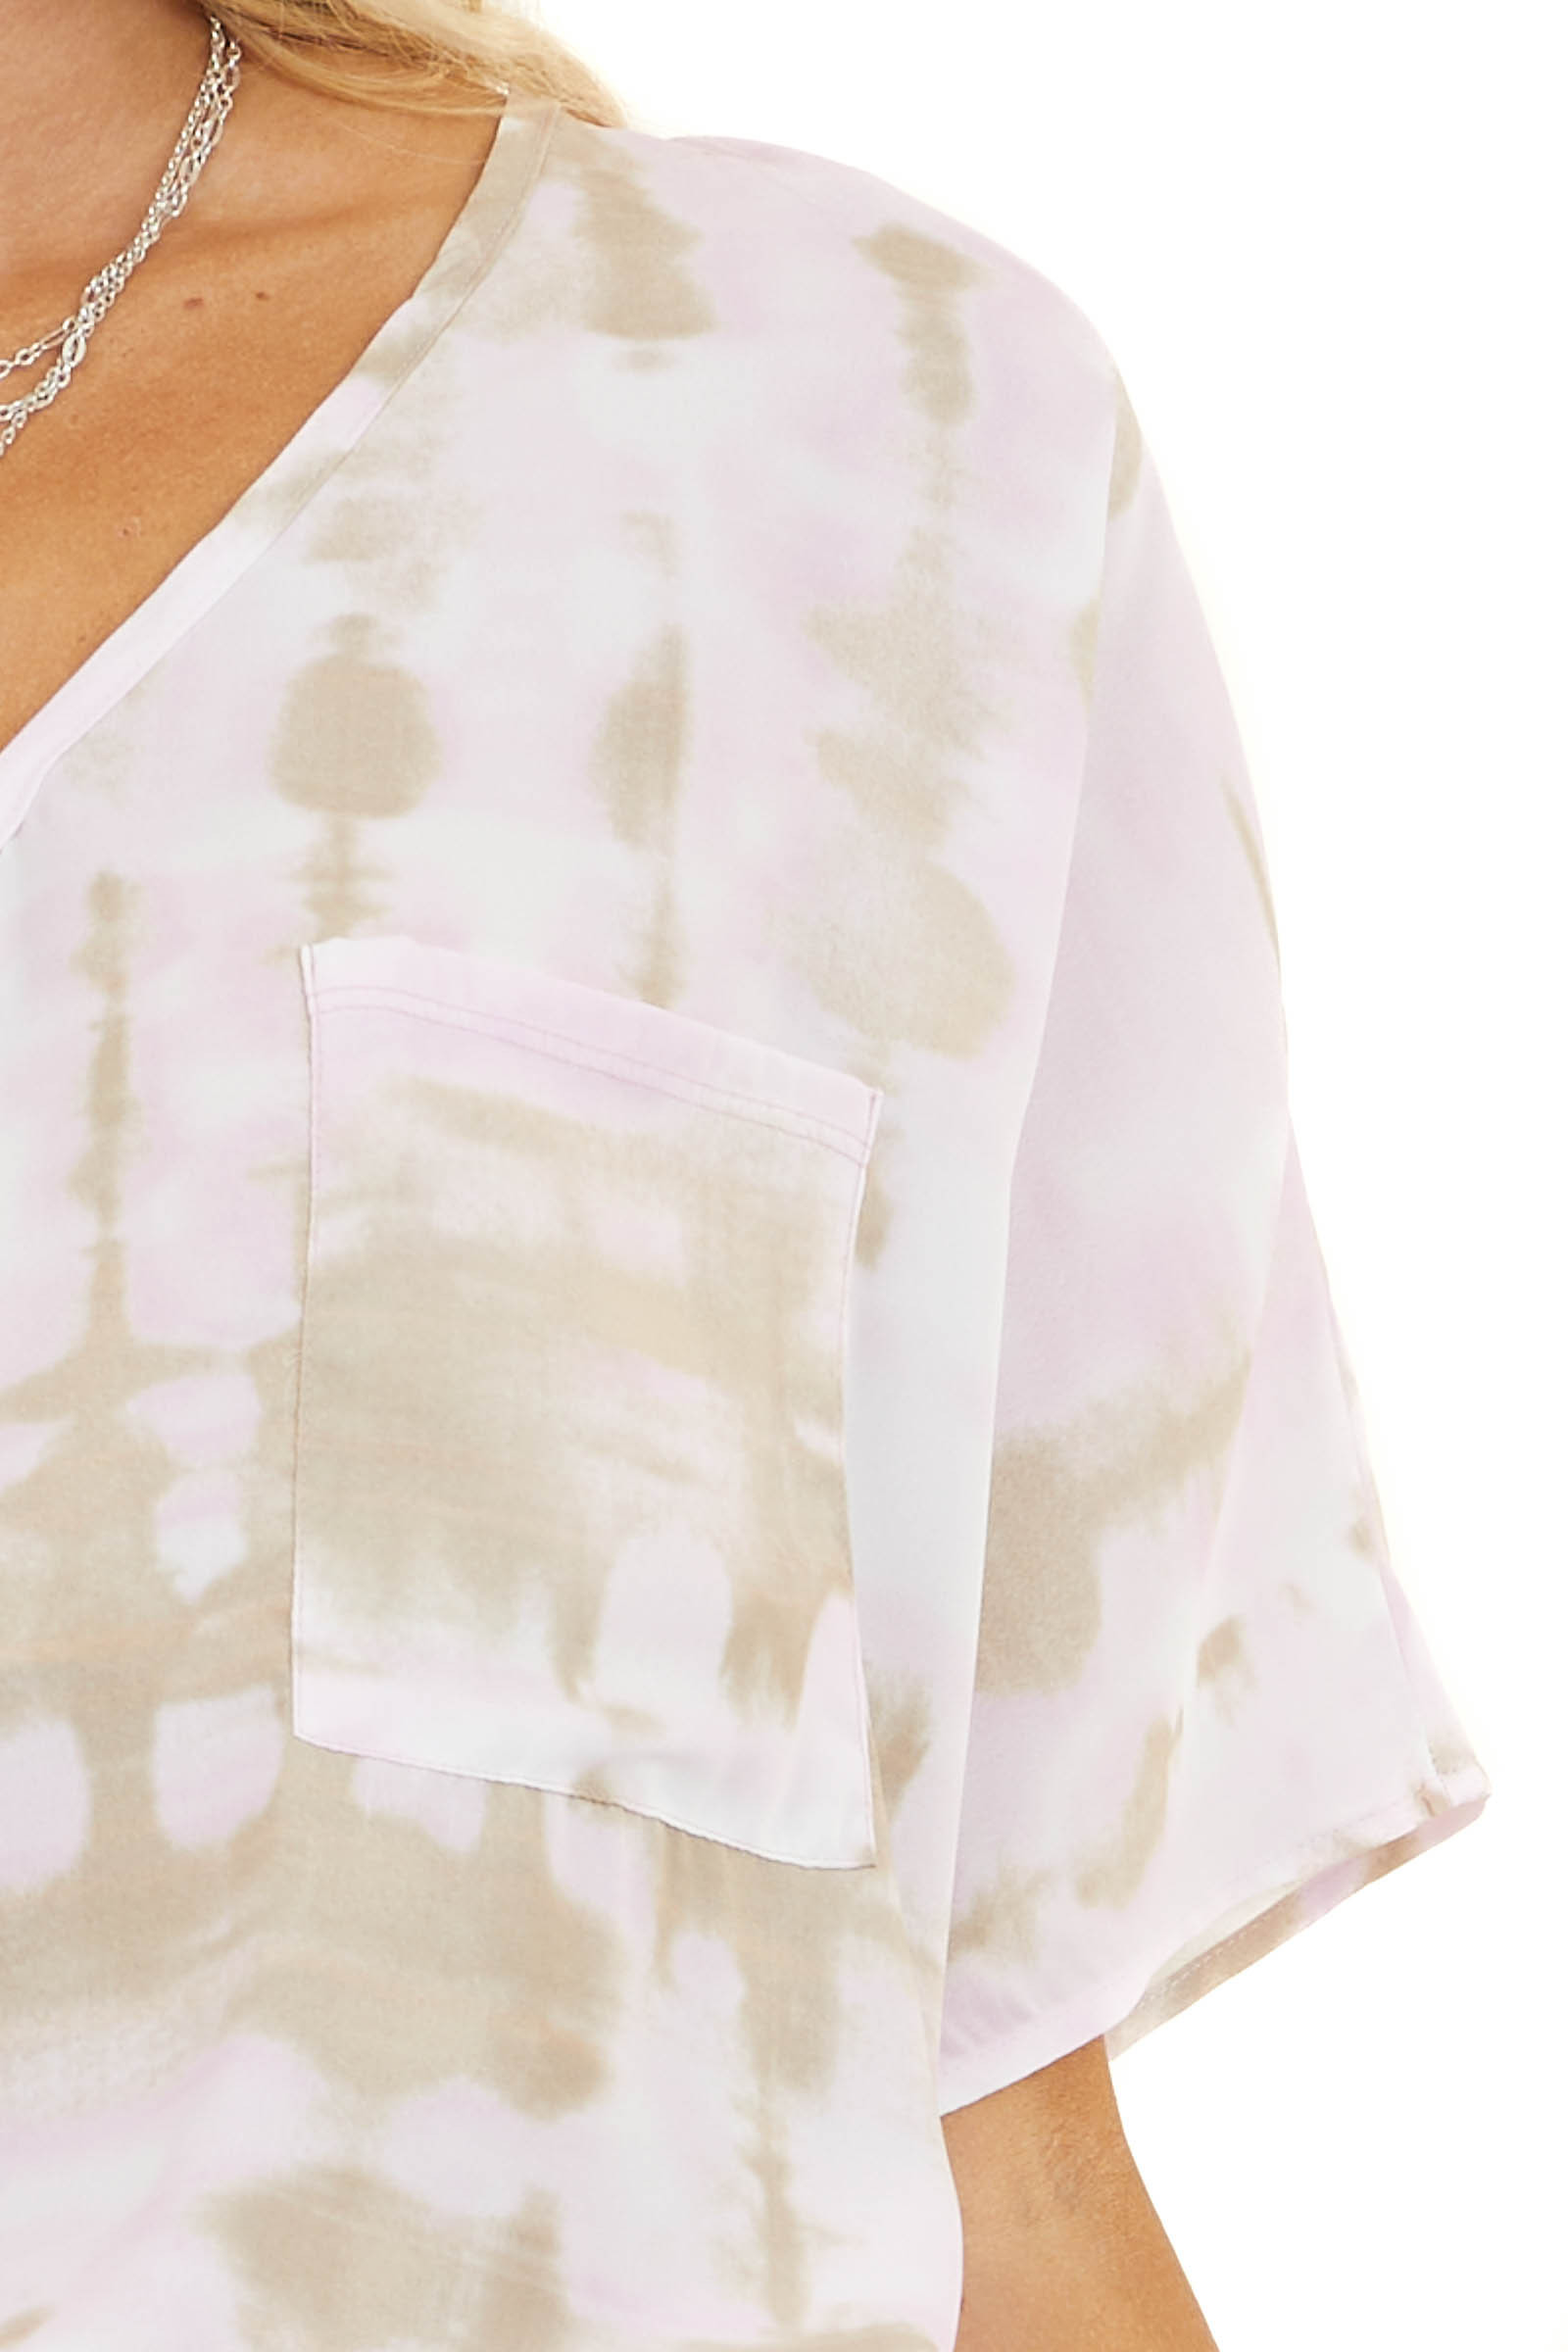 Baby Pink and Latte Tie Dye Woven Top with Front Pocket